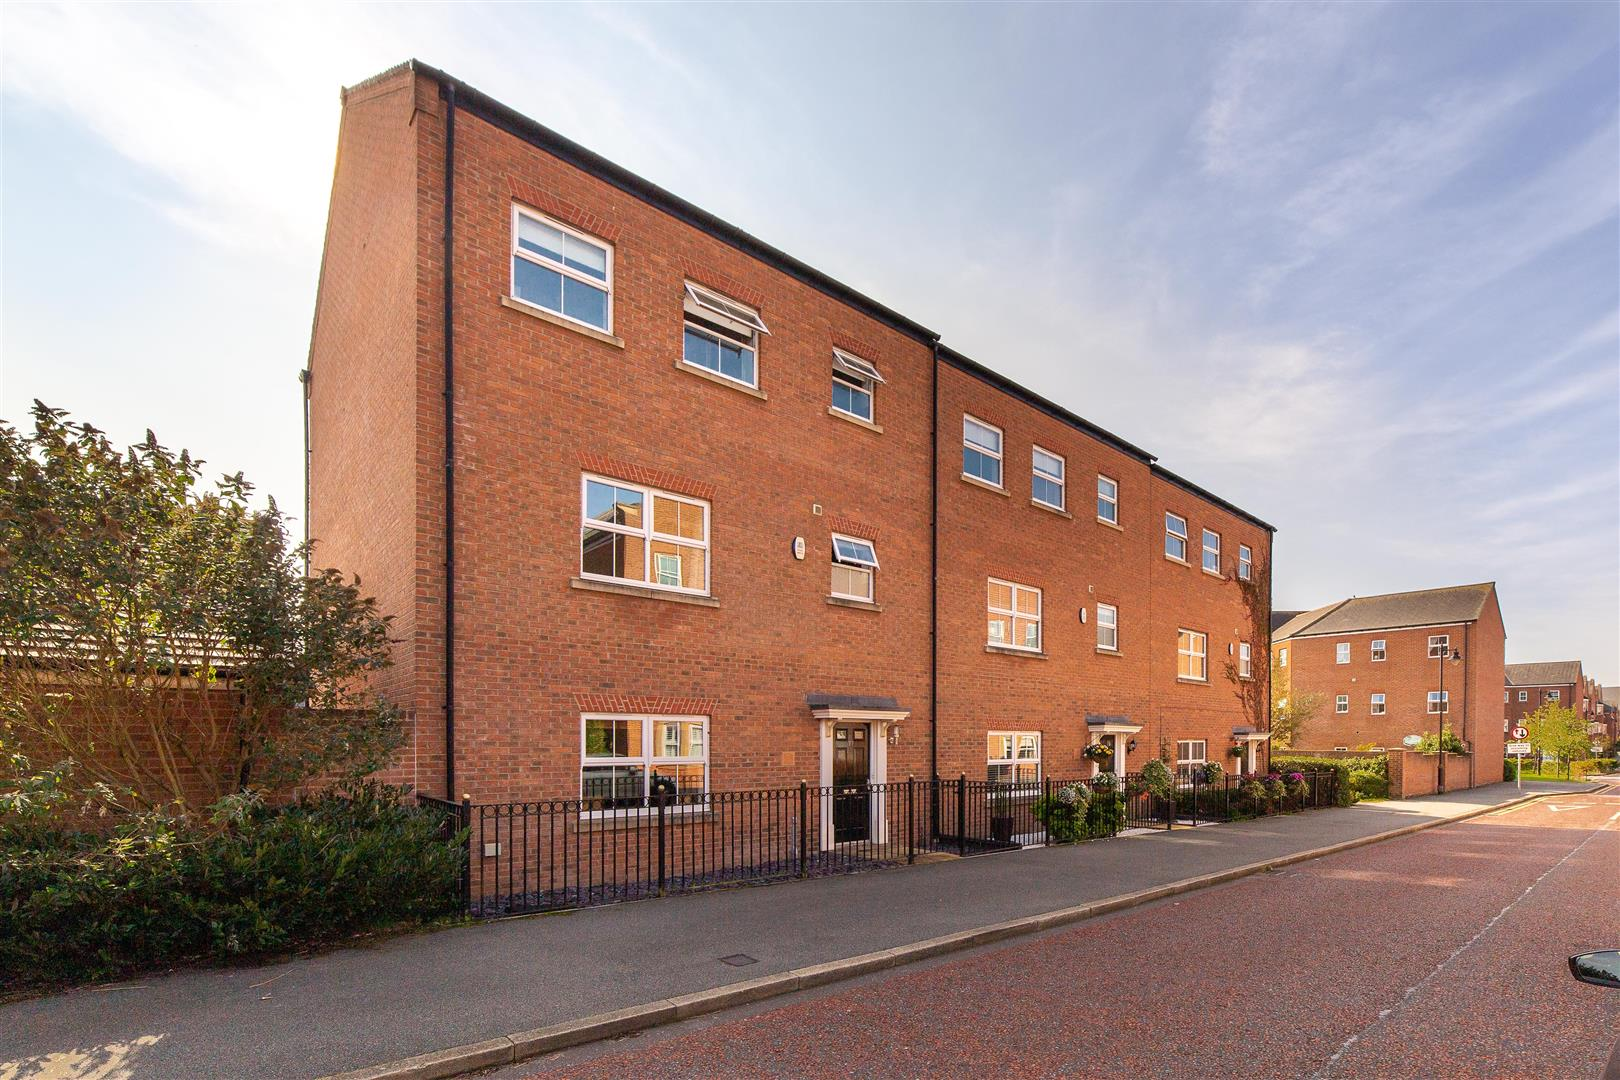 4 bed town house for sale in Newcastle Upon Tyne, NE3 5RF, NE3